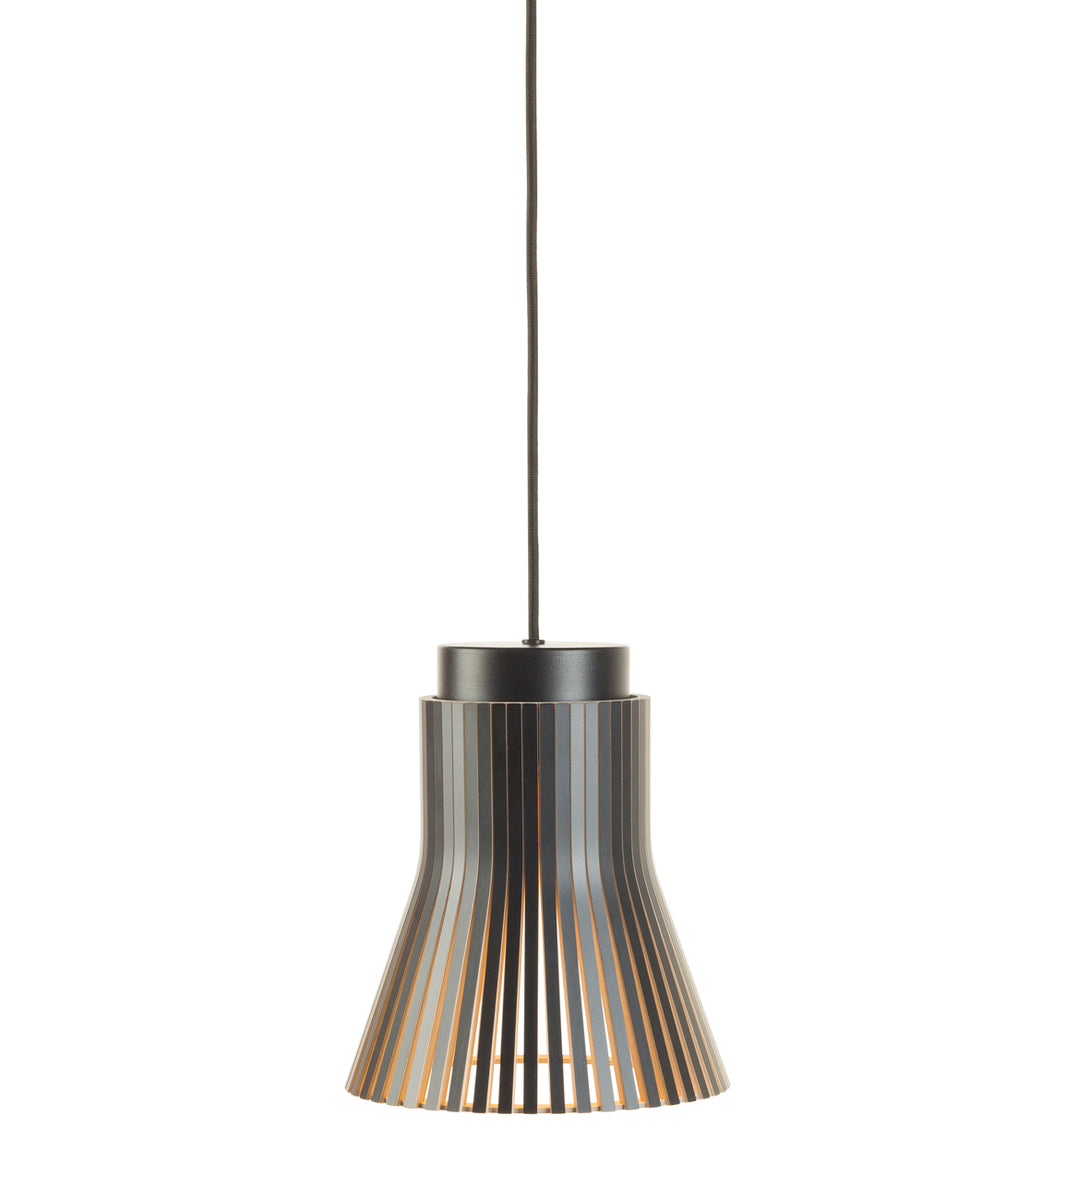 Seppo Koho Pendant light Secto Finland Petite 4600 Black